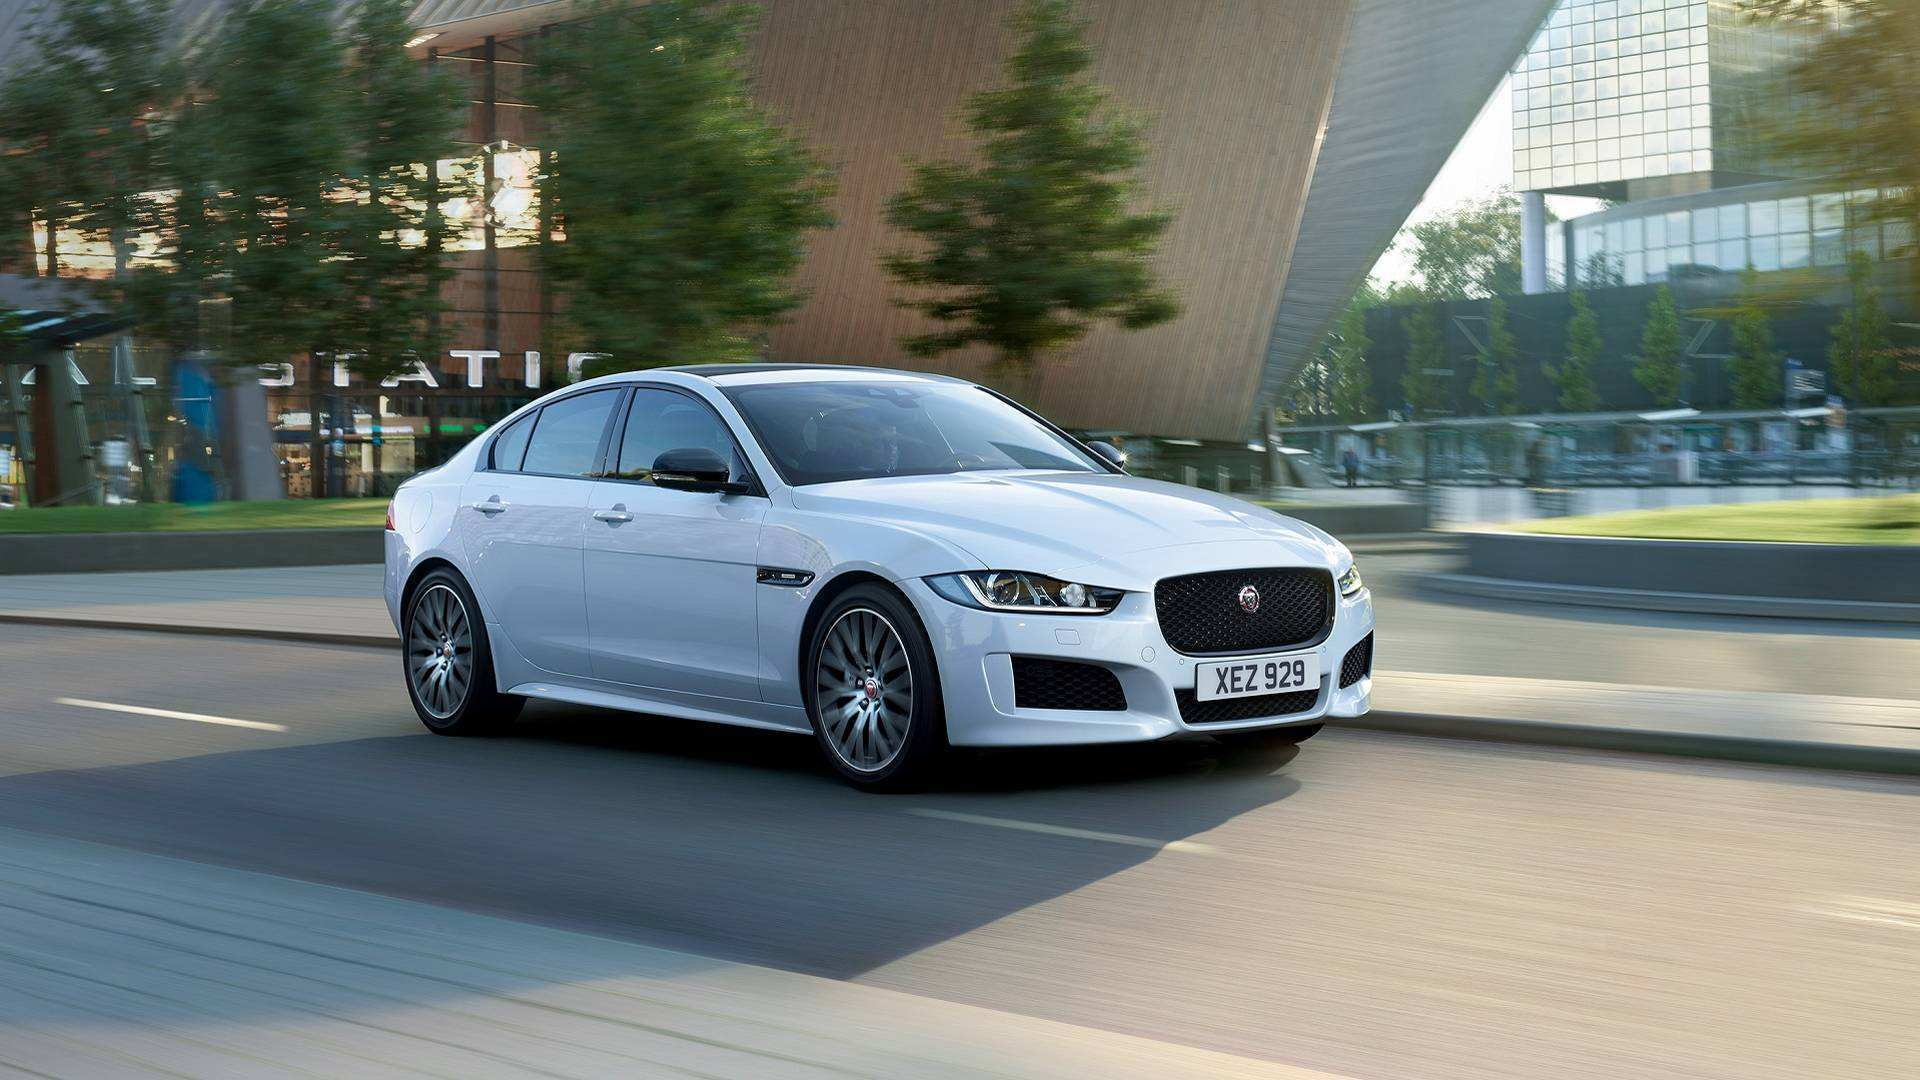 17 New 2019 Jaguar Xe Landmark Research New